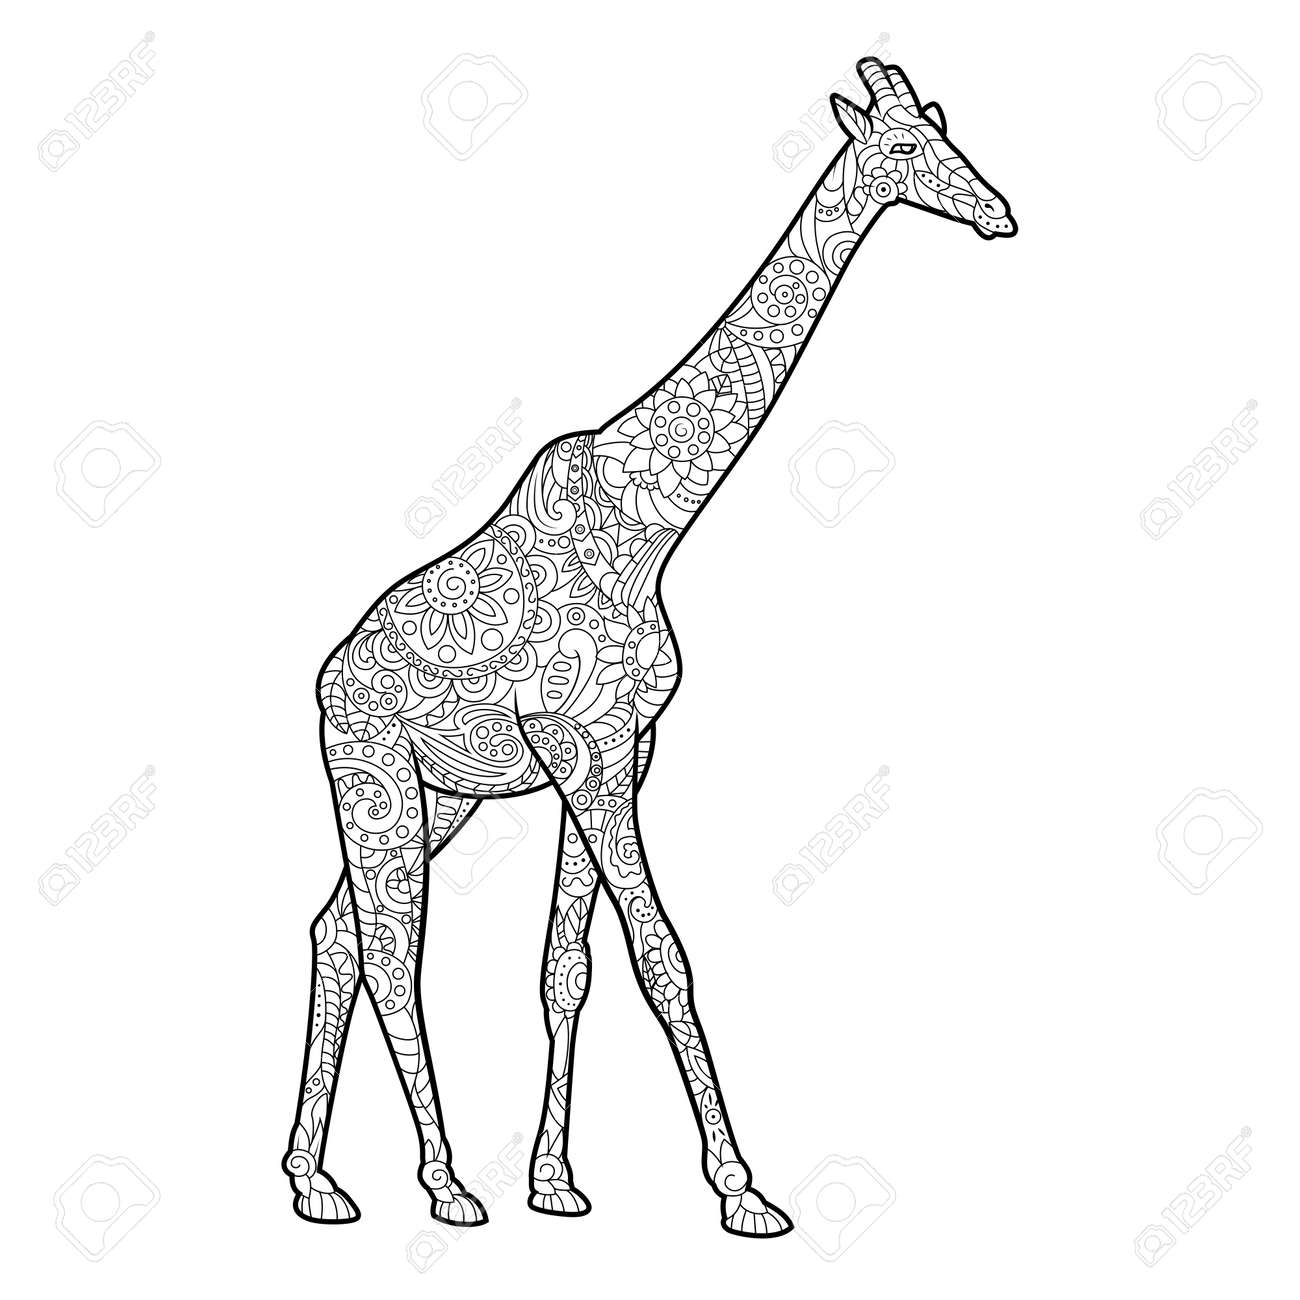 Giraffe Coloring Book For Adults Vector Illustration. Anti-stress ...